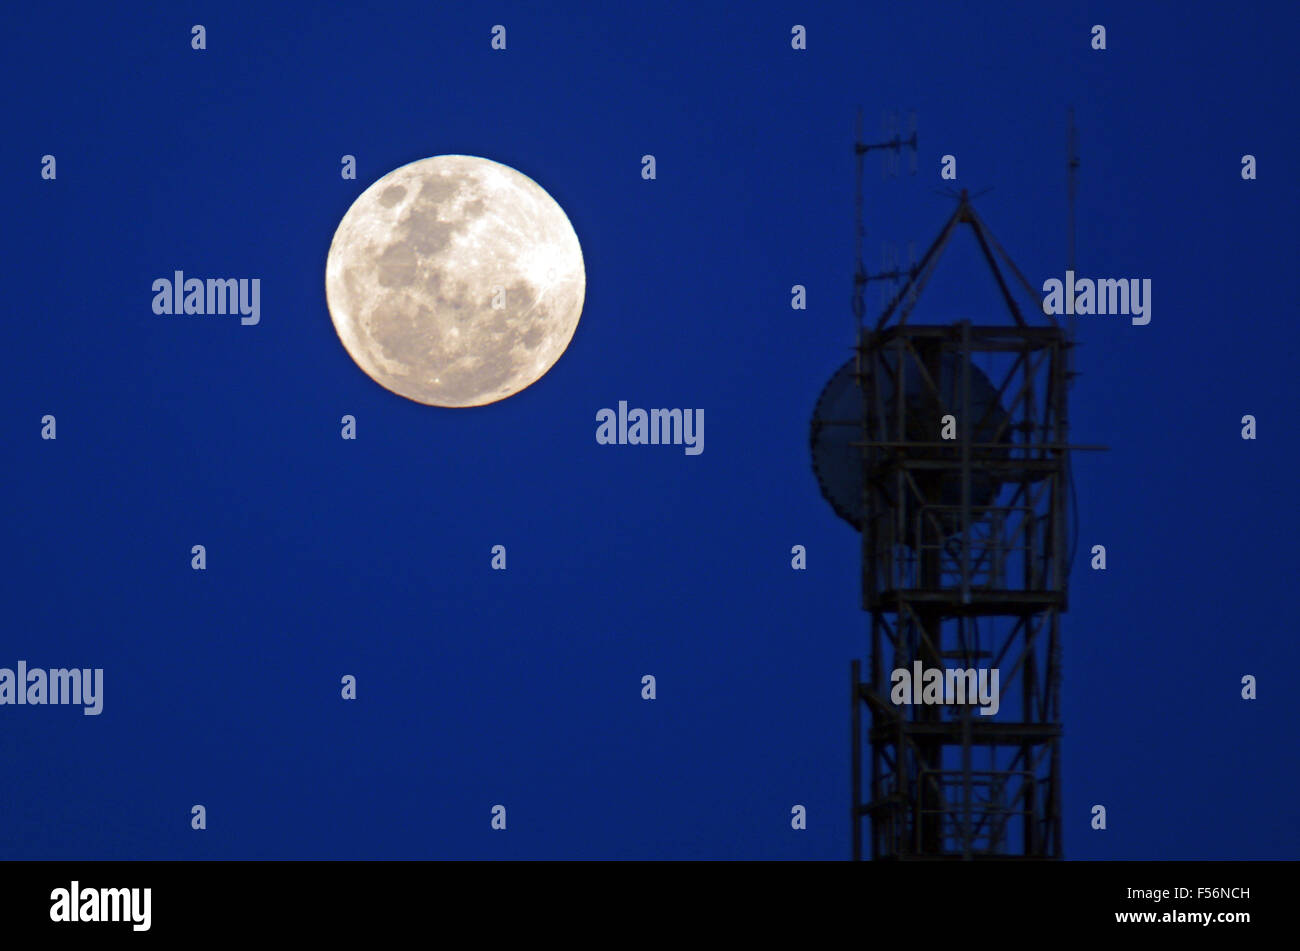 Full moon rise against silhouettes of television and radio antenna on evening dusk sky background. Outer space concept - Stock Image